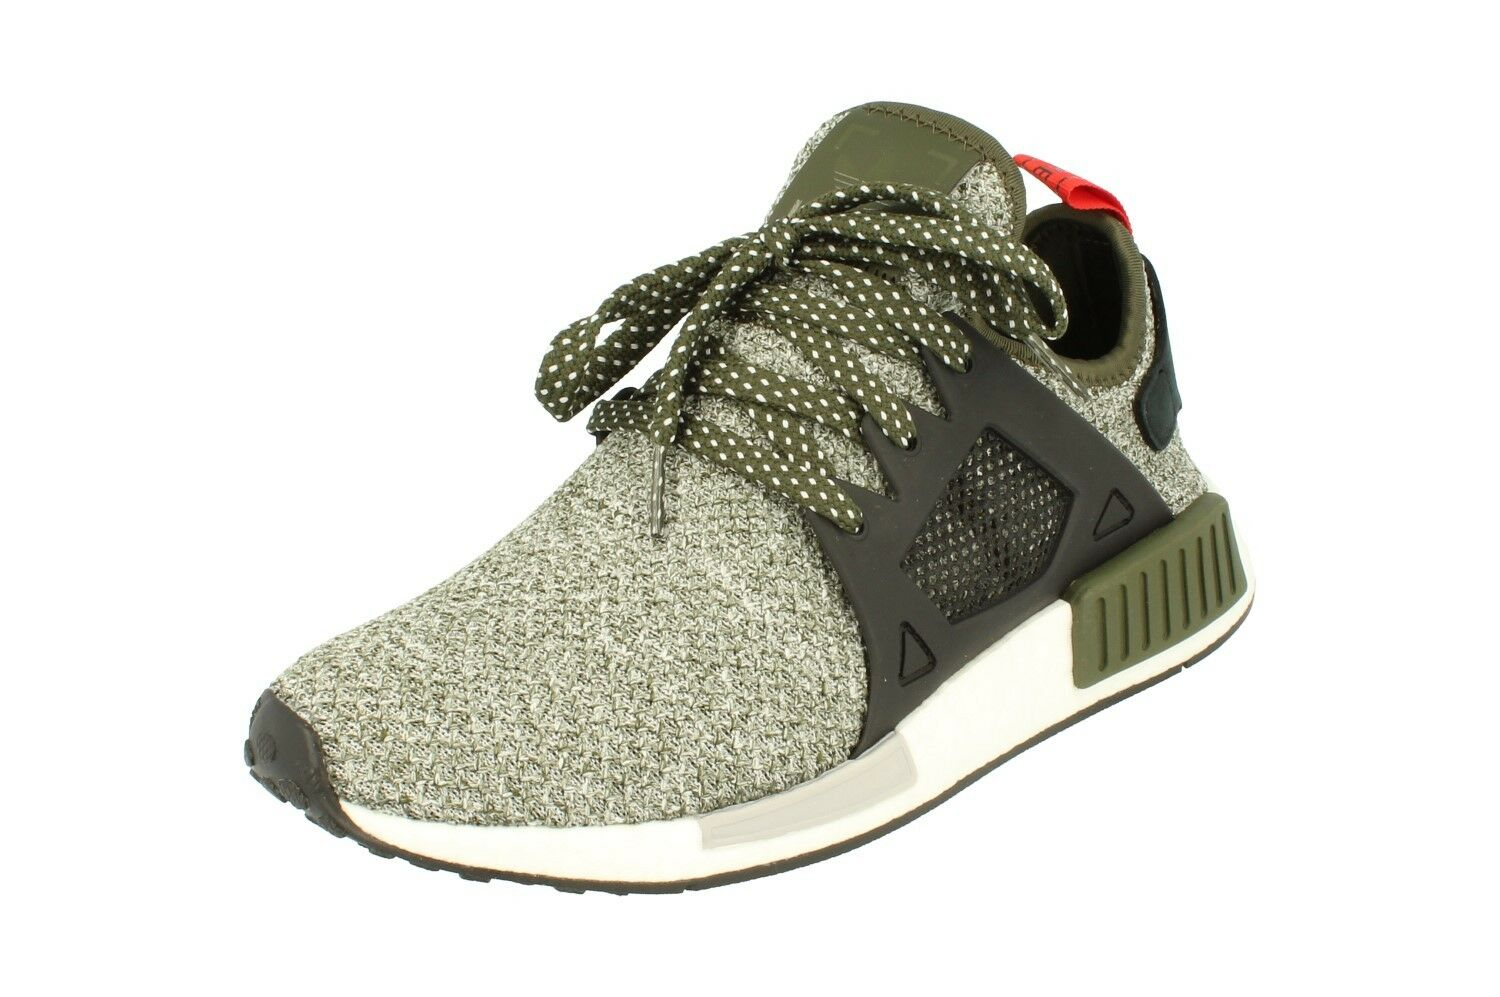 Adidas Originals Nmd_Xr1 Mens Running Trainers Sneakers Shoes CQ1954